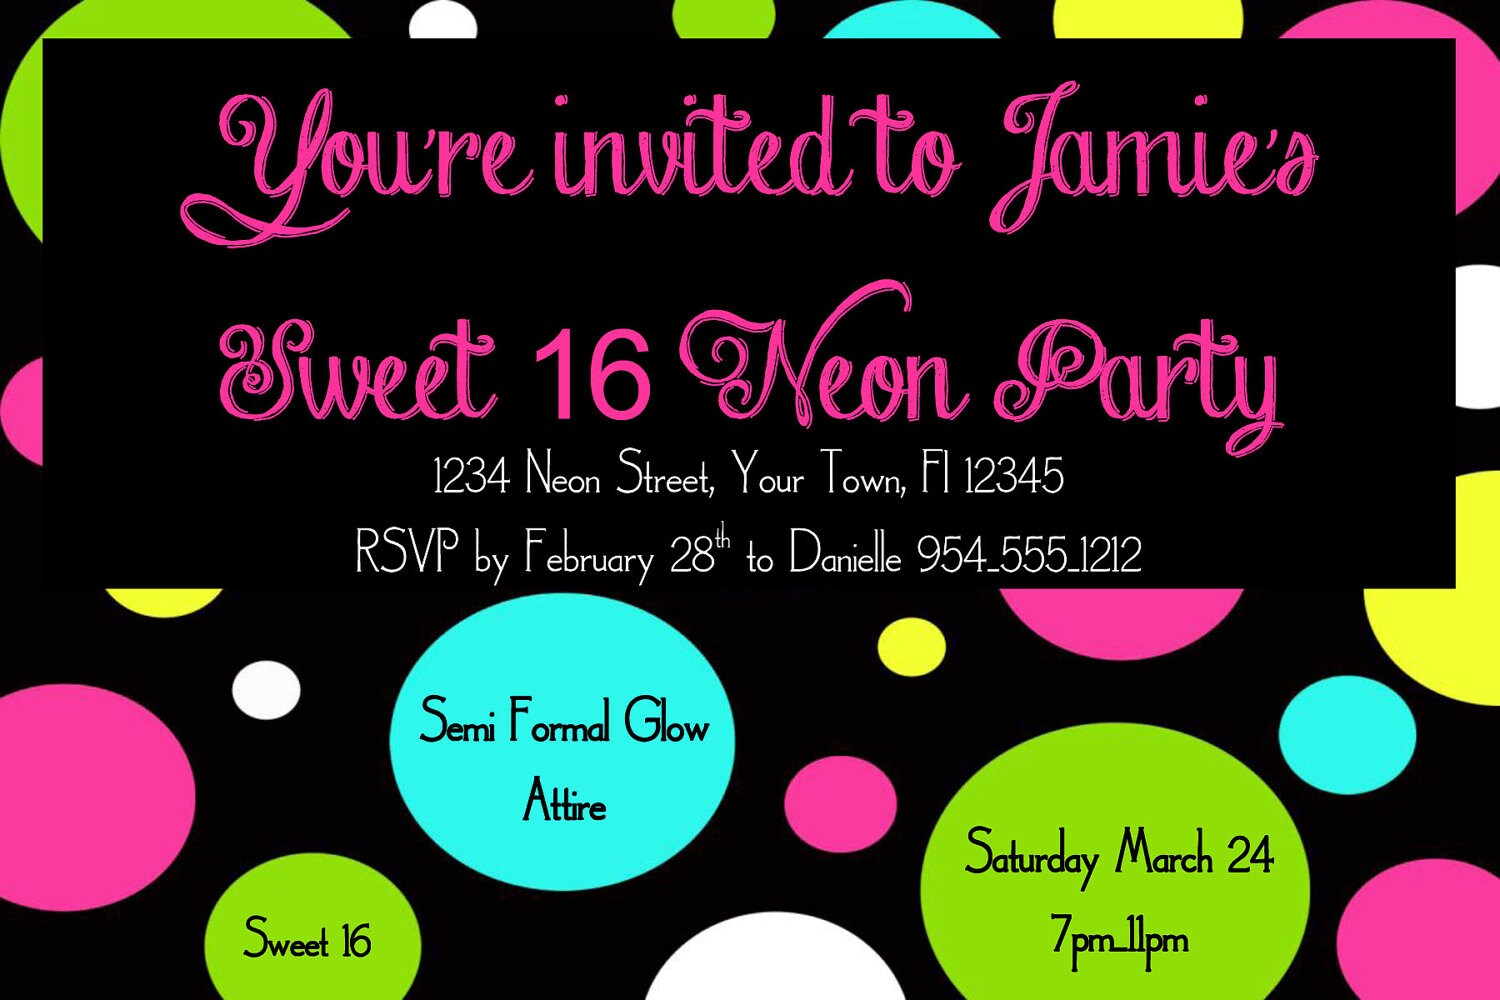 Neon Birthday Invitations could be nice ideas for your invitation template